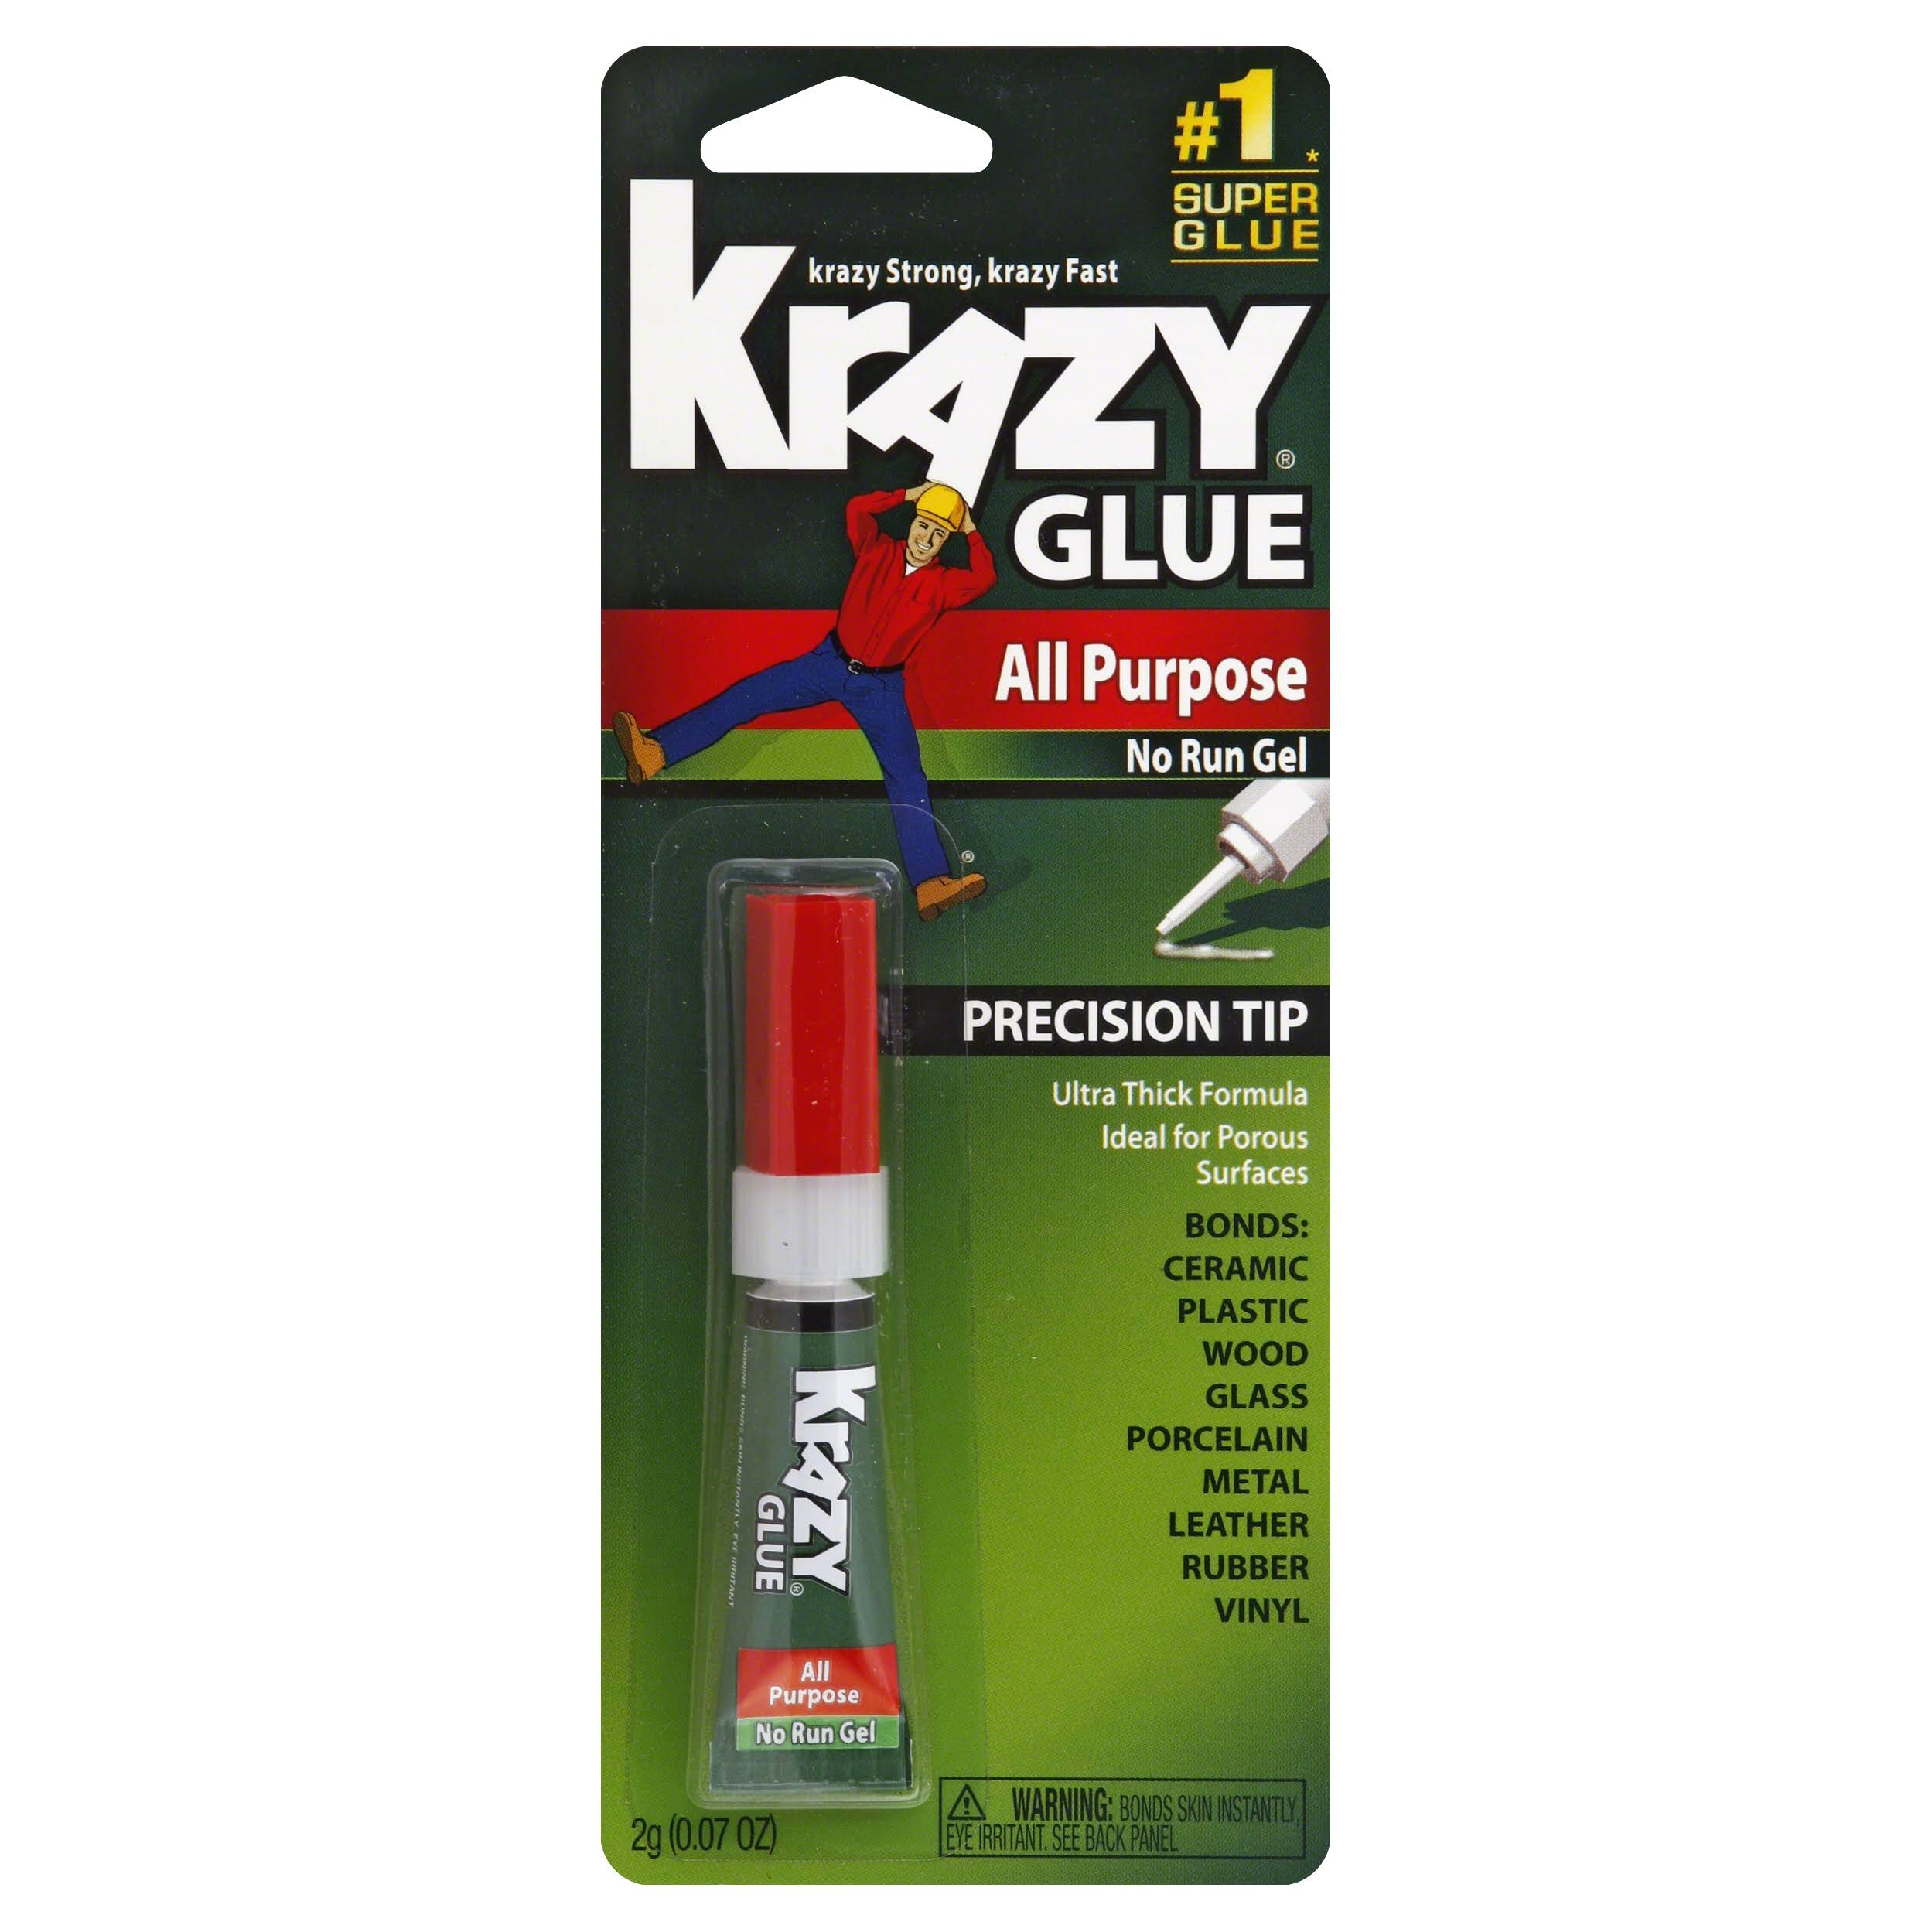 Krazy Glue All-Purpose Glue - Gel Formula, 2g